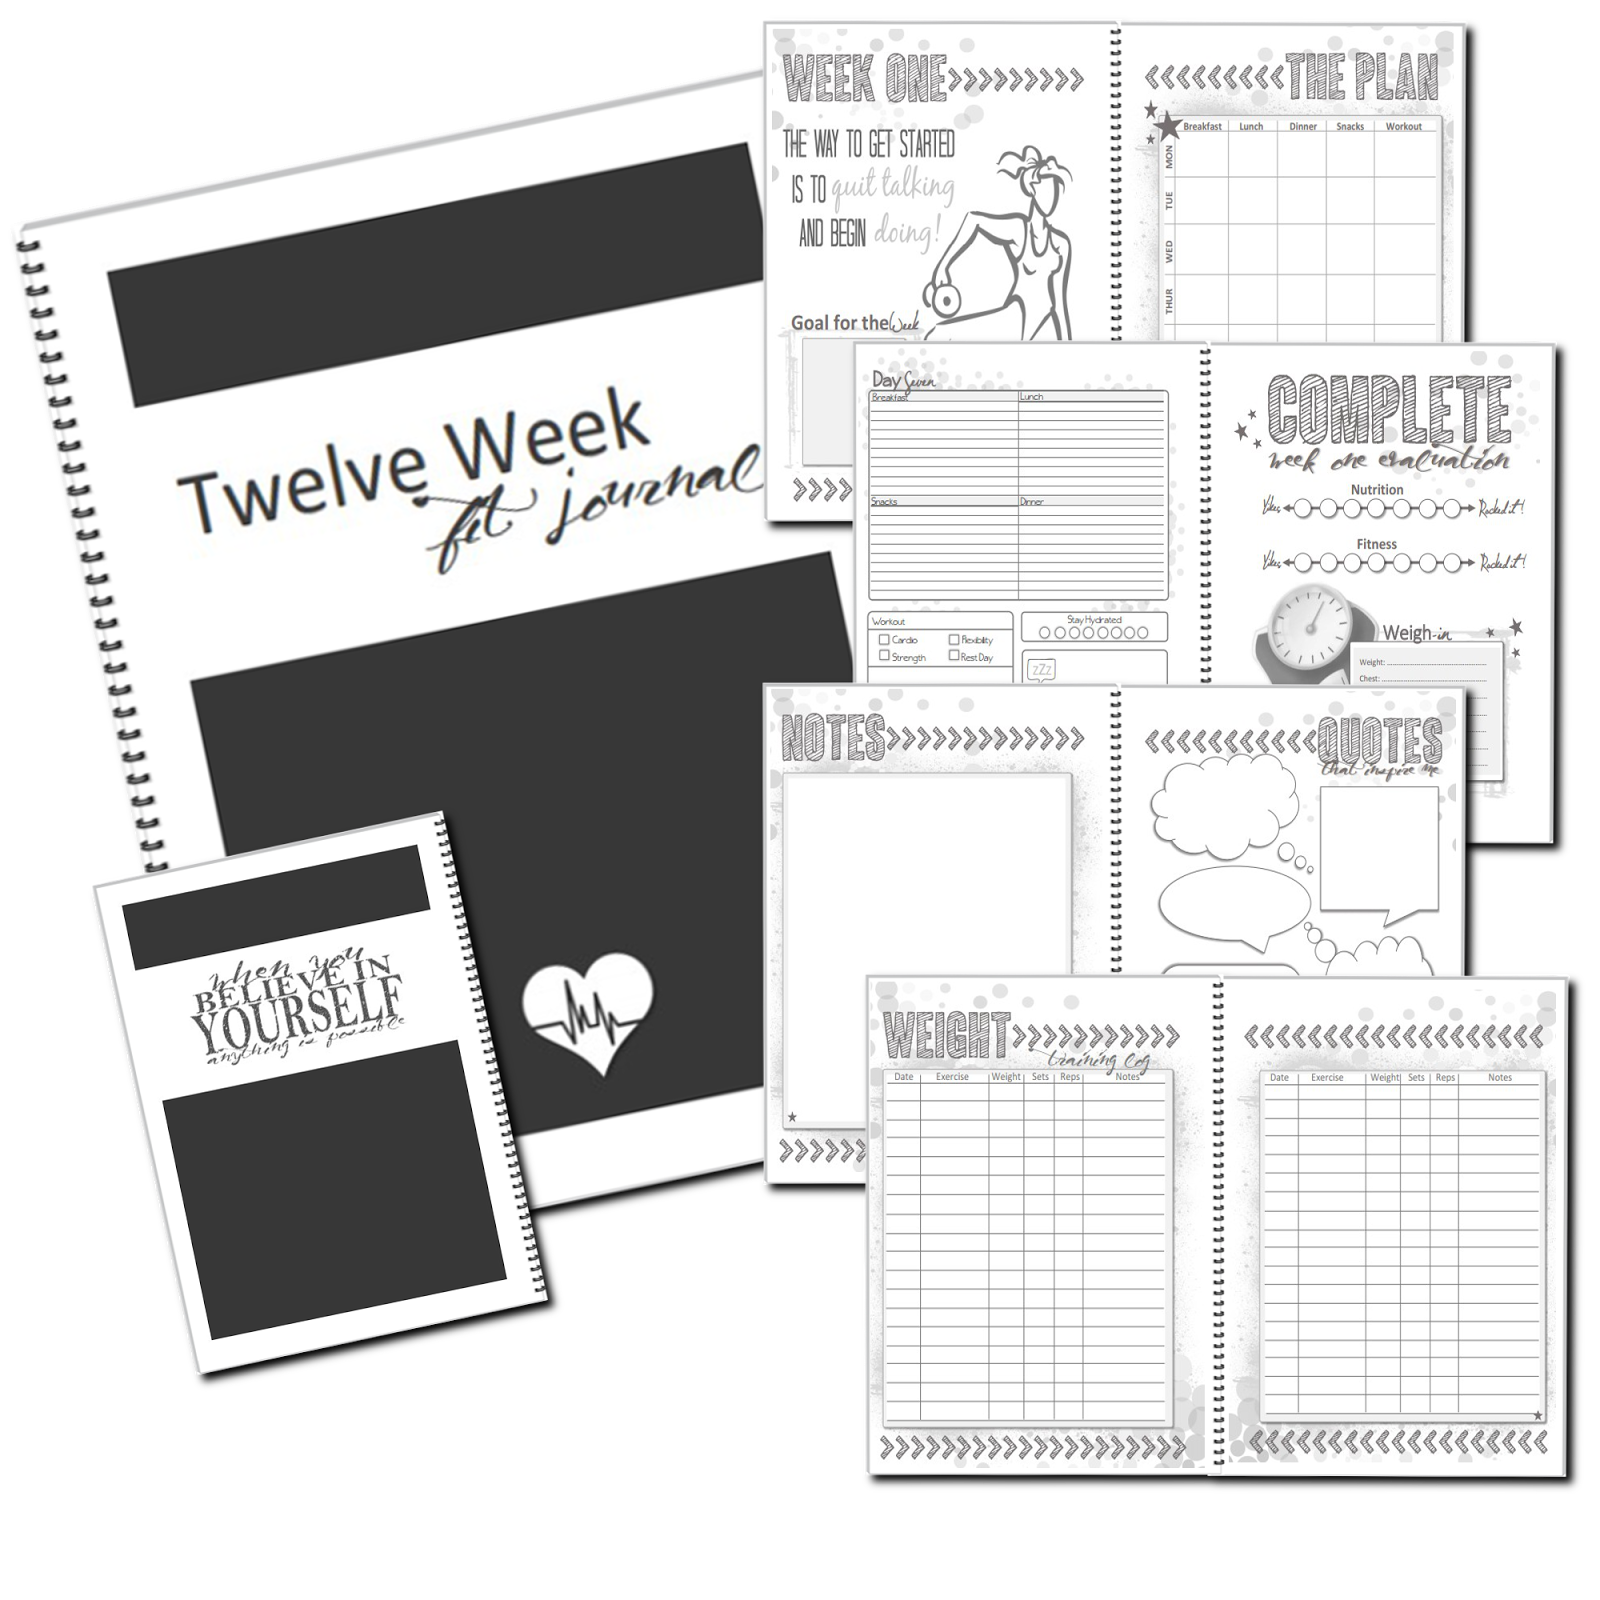 Success Journal 12 Week Weight Loss Workbook To Insanity Amp Back